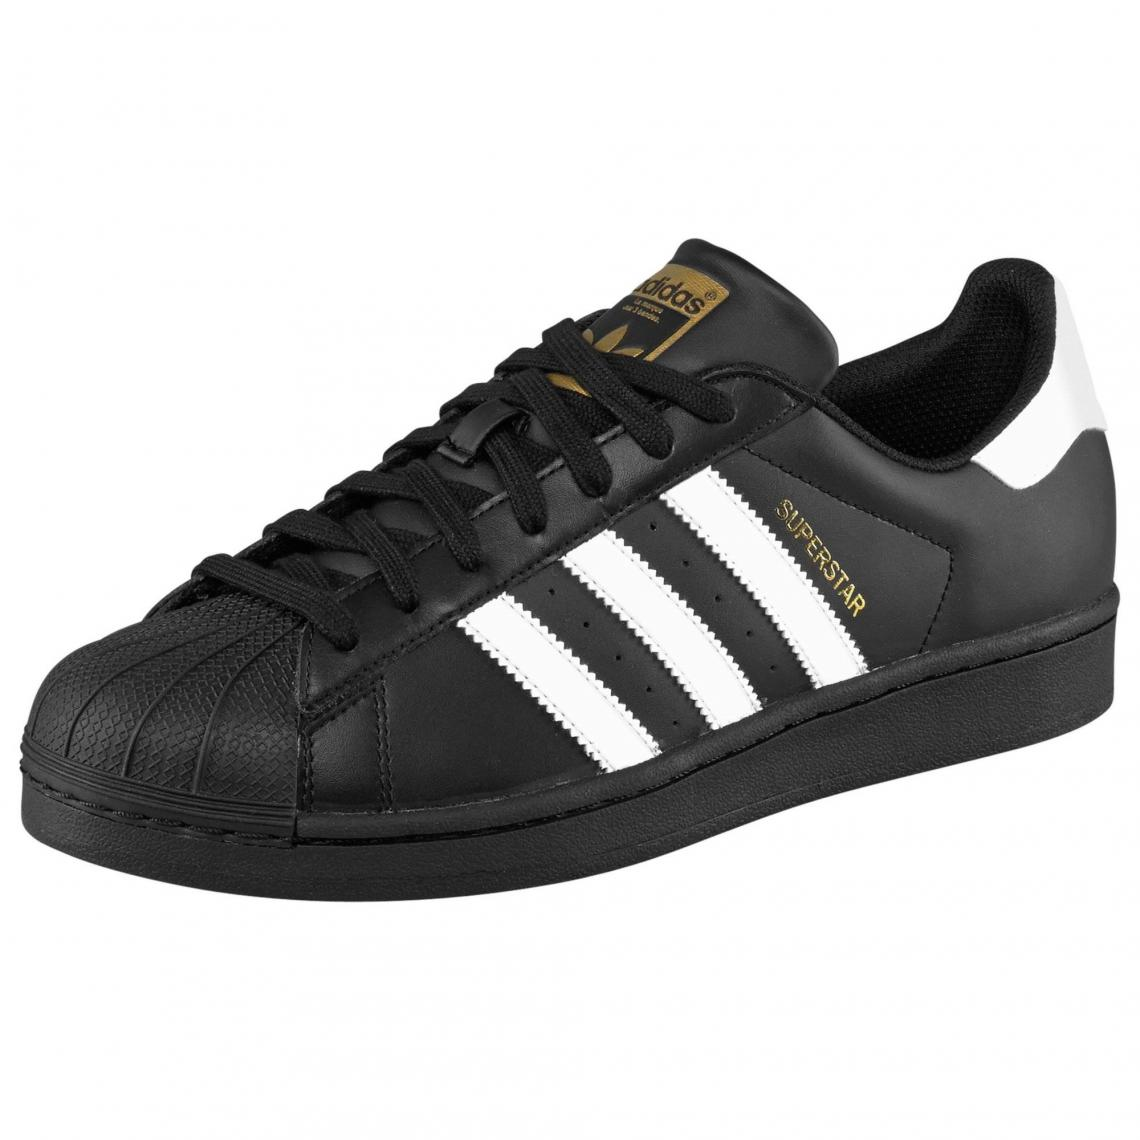 2be205eee6b4 Tennis adidas Originals Superstar East River pour homme - Noir Adidas  Originals Homme